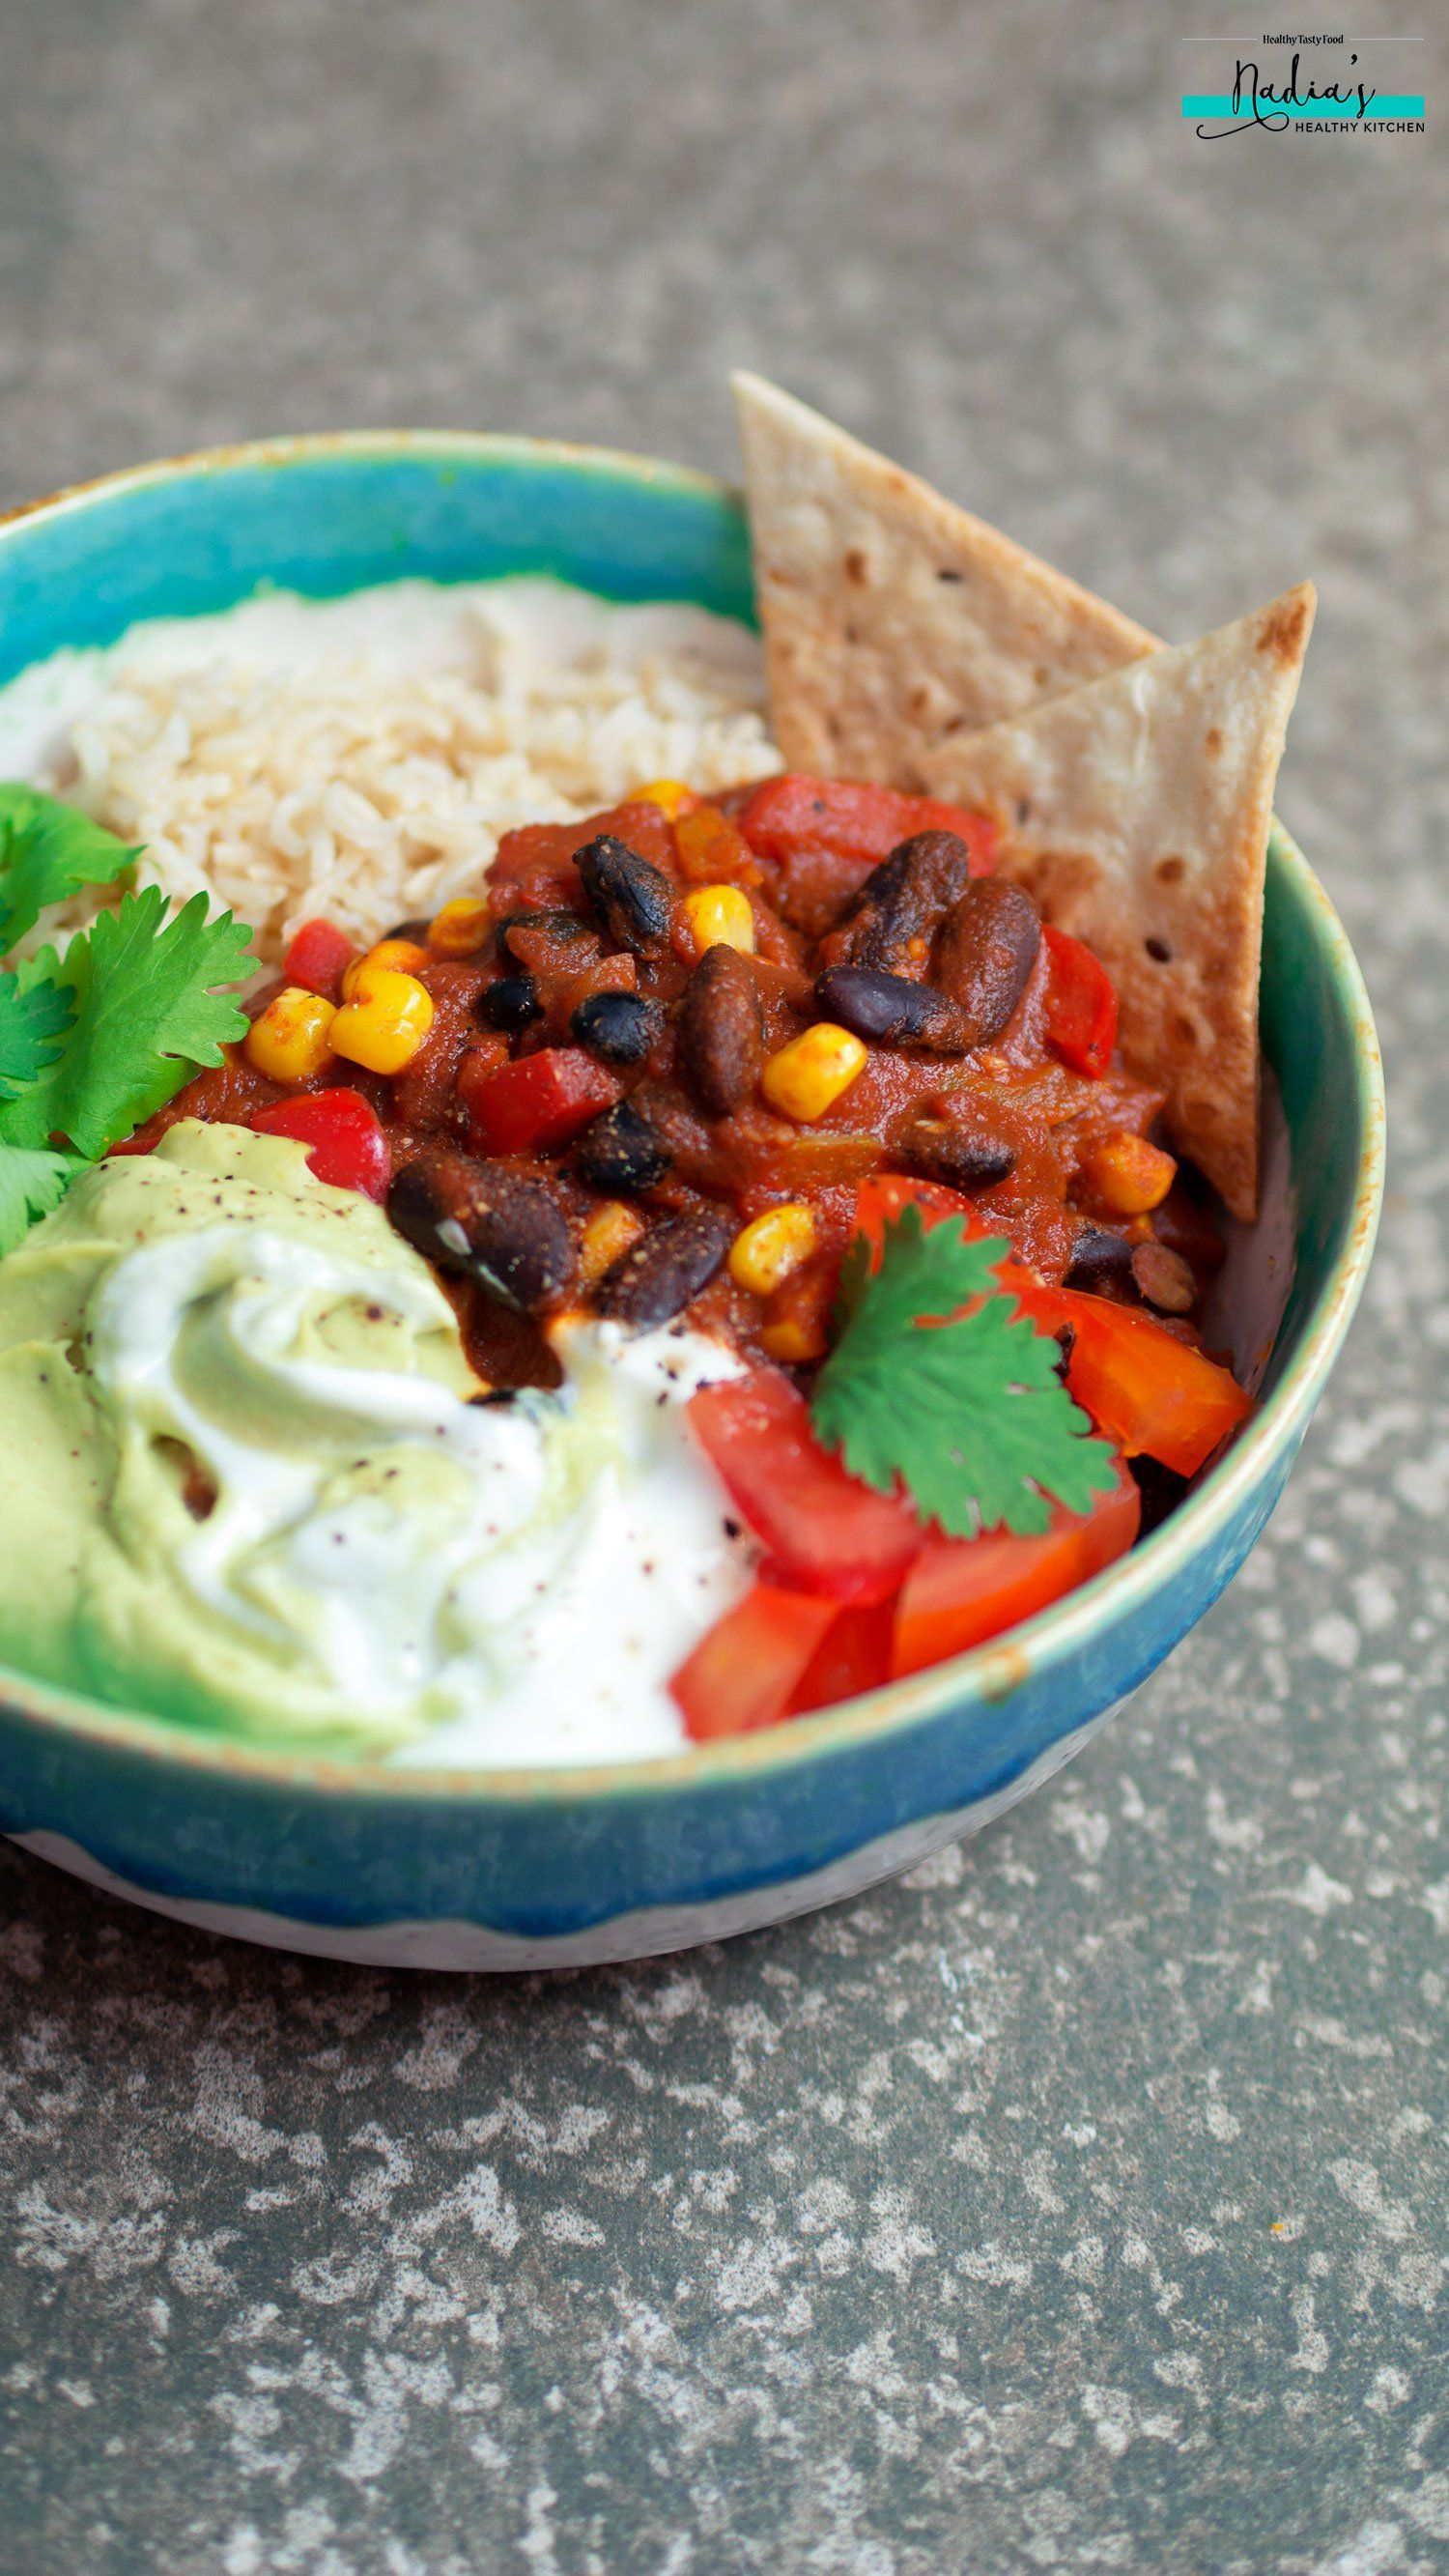 Vegan chilli con carne uk health blog nadias healthy kitchen food vegan chilli con carne uk health blog forumfinder Choice Image